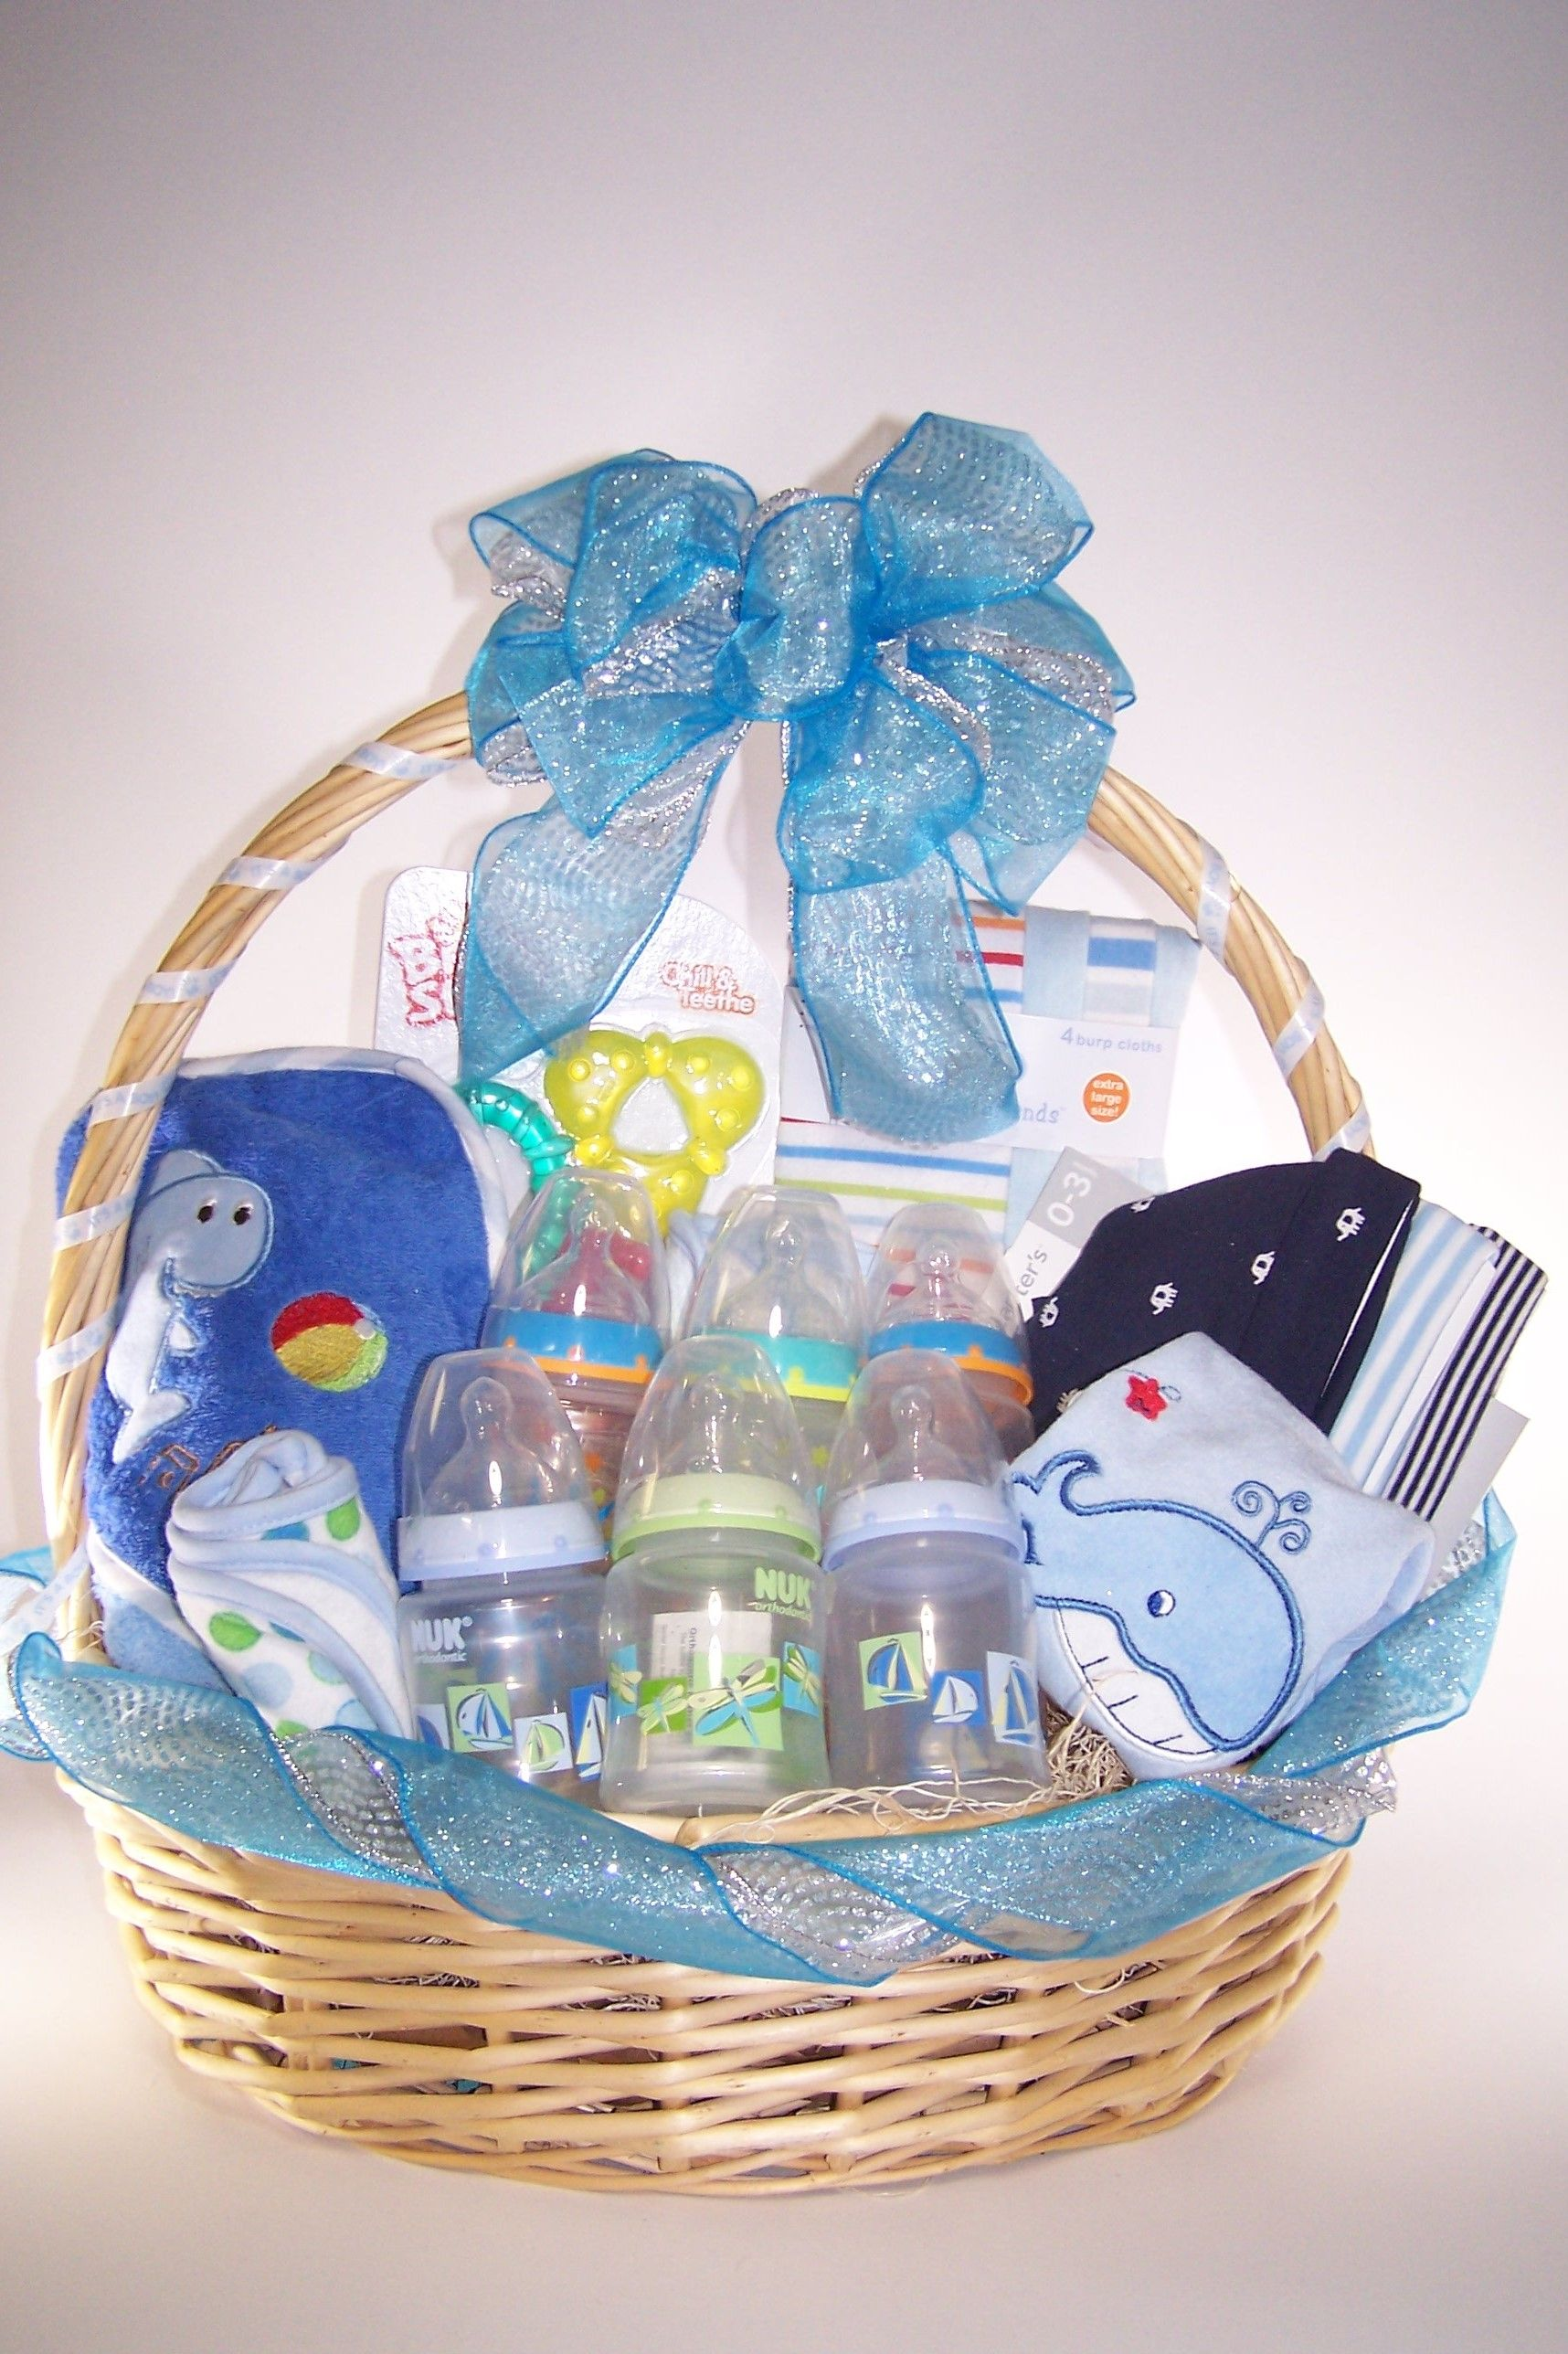 Baby Shower Gift Ideas Boy : Baby shower it s a boy gift basket baskets